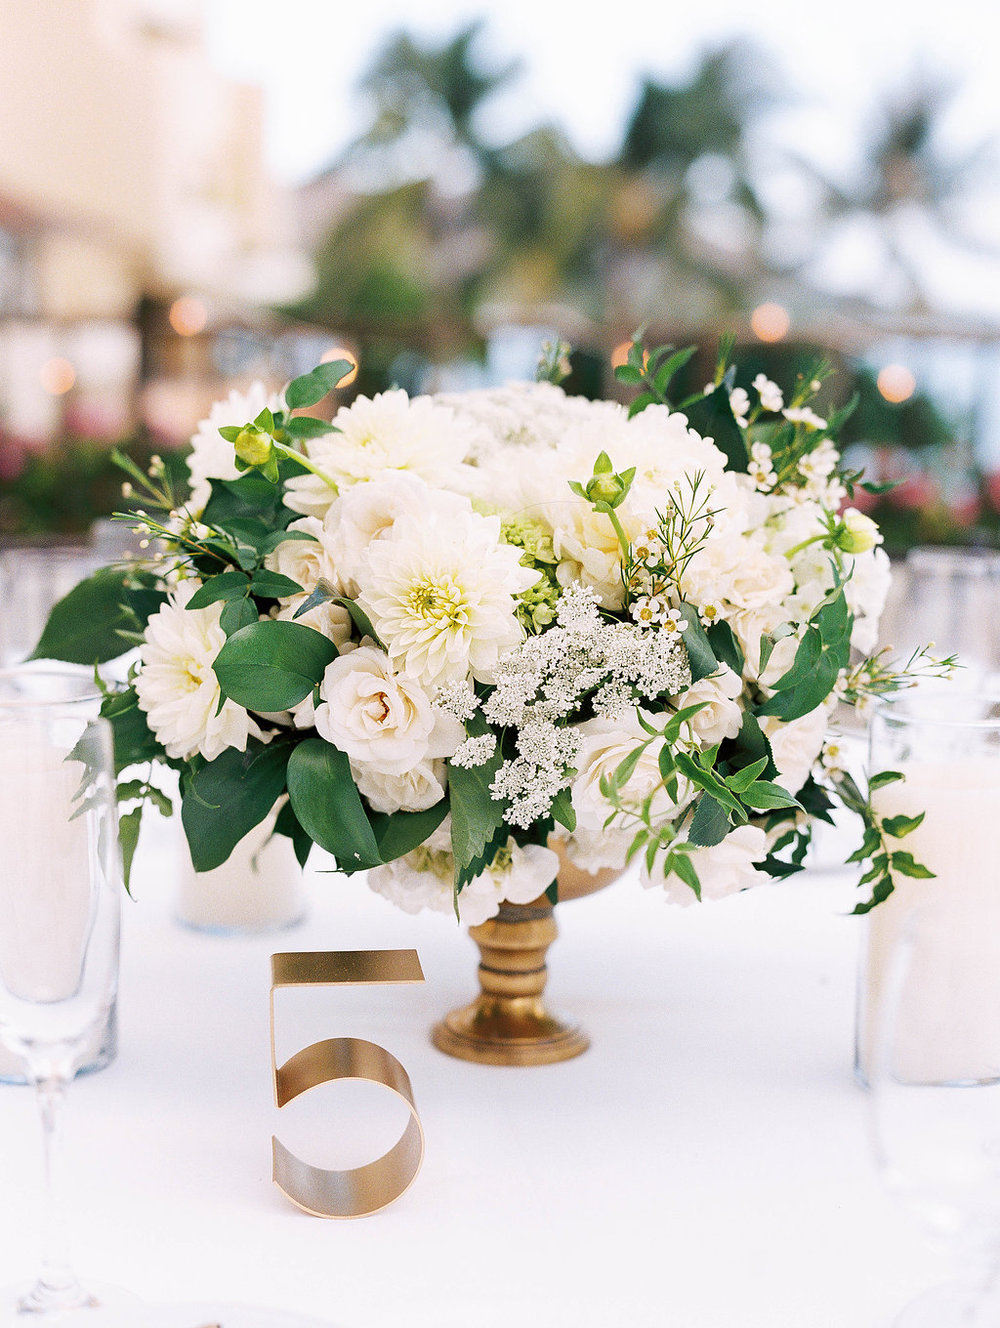 Passion roots oahu hawaii florist centerpieces white and green centerpice by passion roots ashley goodwin photography oahu hawaii junglespirit